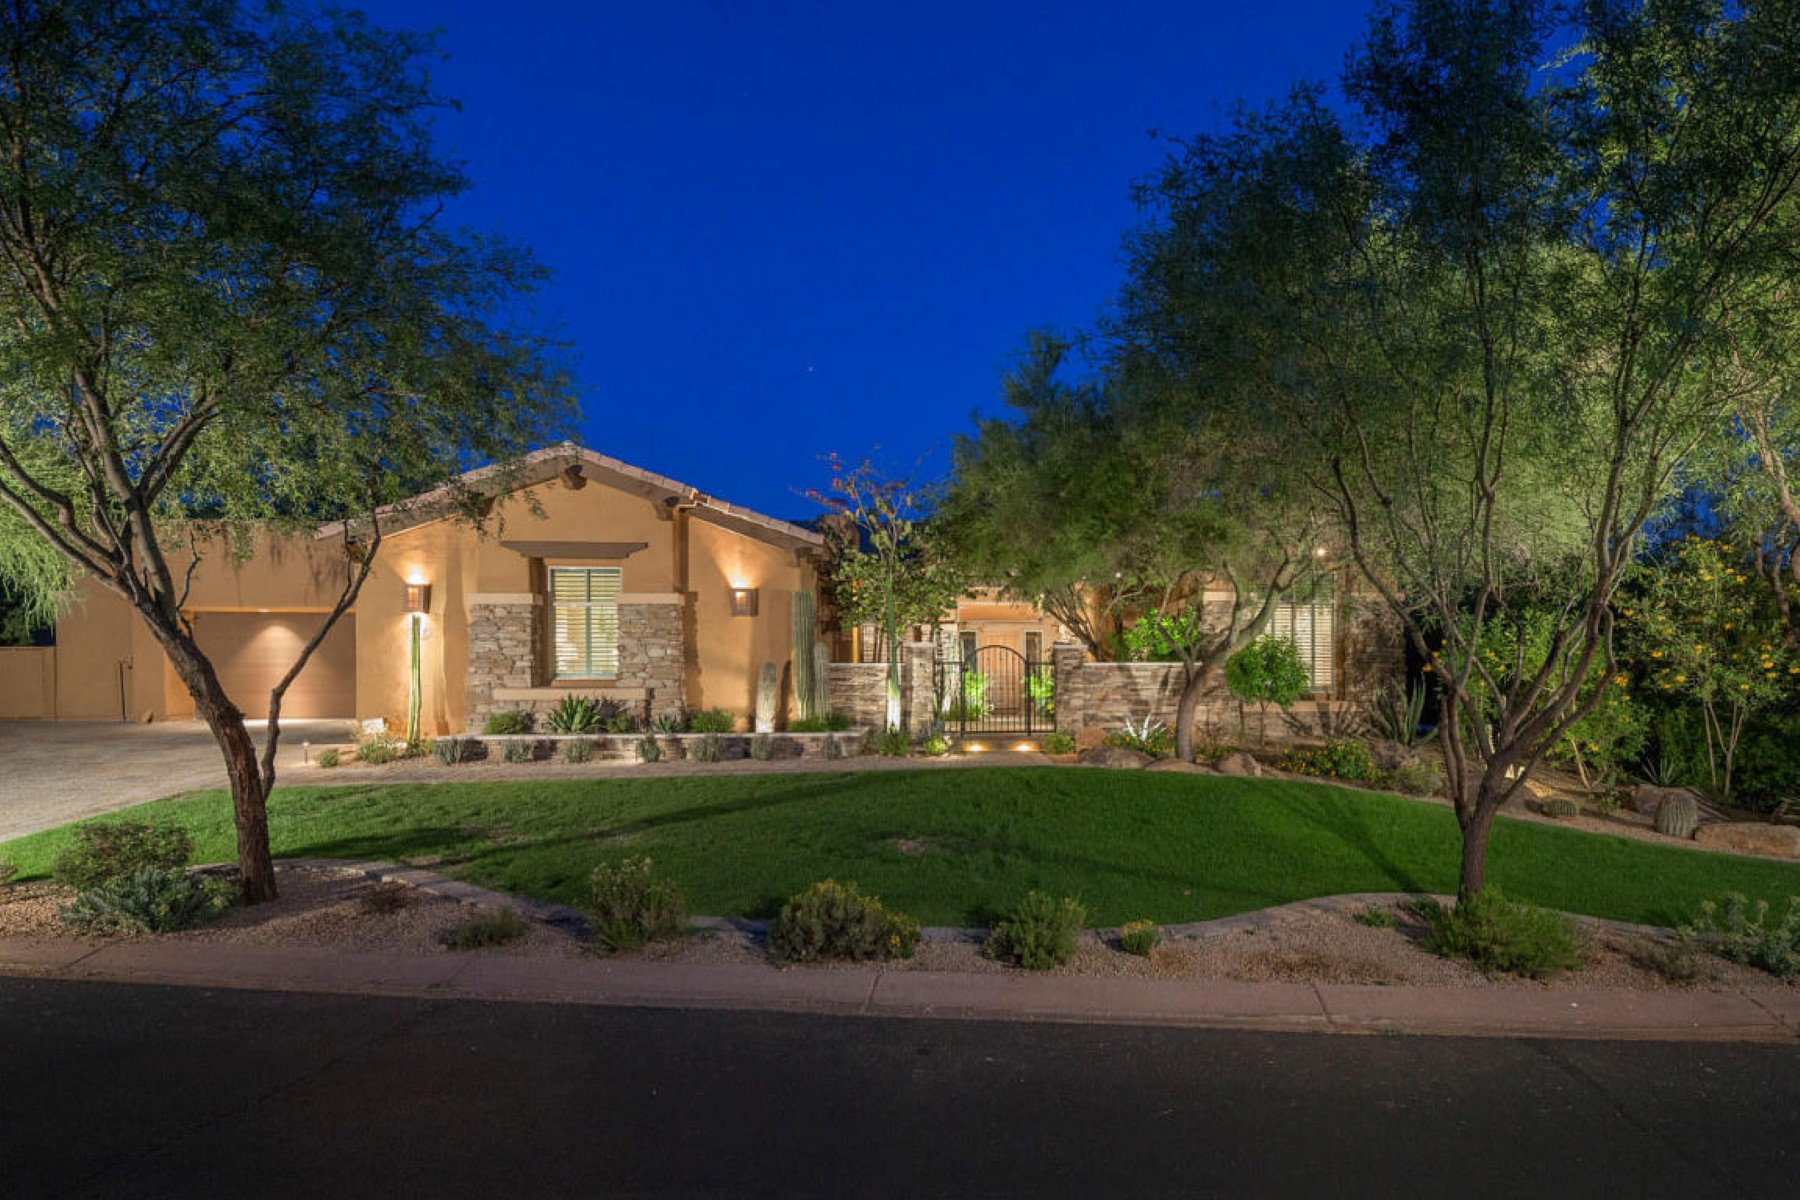 Einfamilienhaus für Verkauf beim Rare Edmunds Cheyenne floorplan with beautiful McDowell Mountain views 9290 E Thompson Peak Pkwy 137 Scottsdale, Arizona, 85255 Vereinigte Staaten